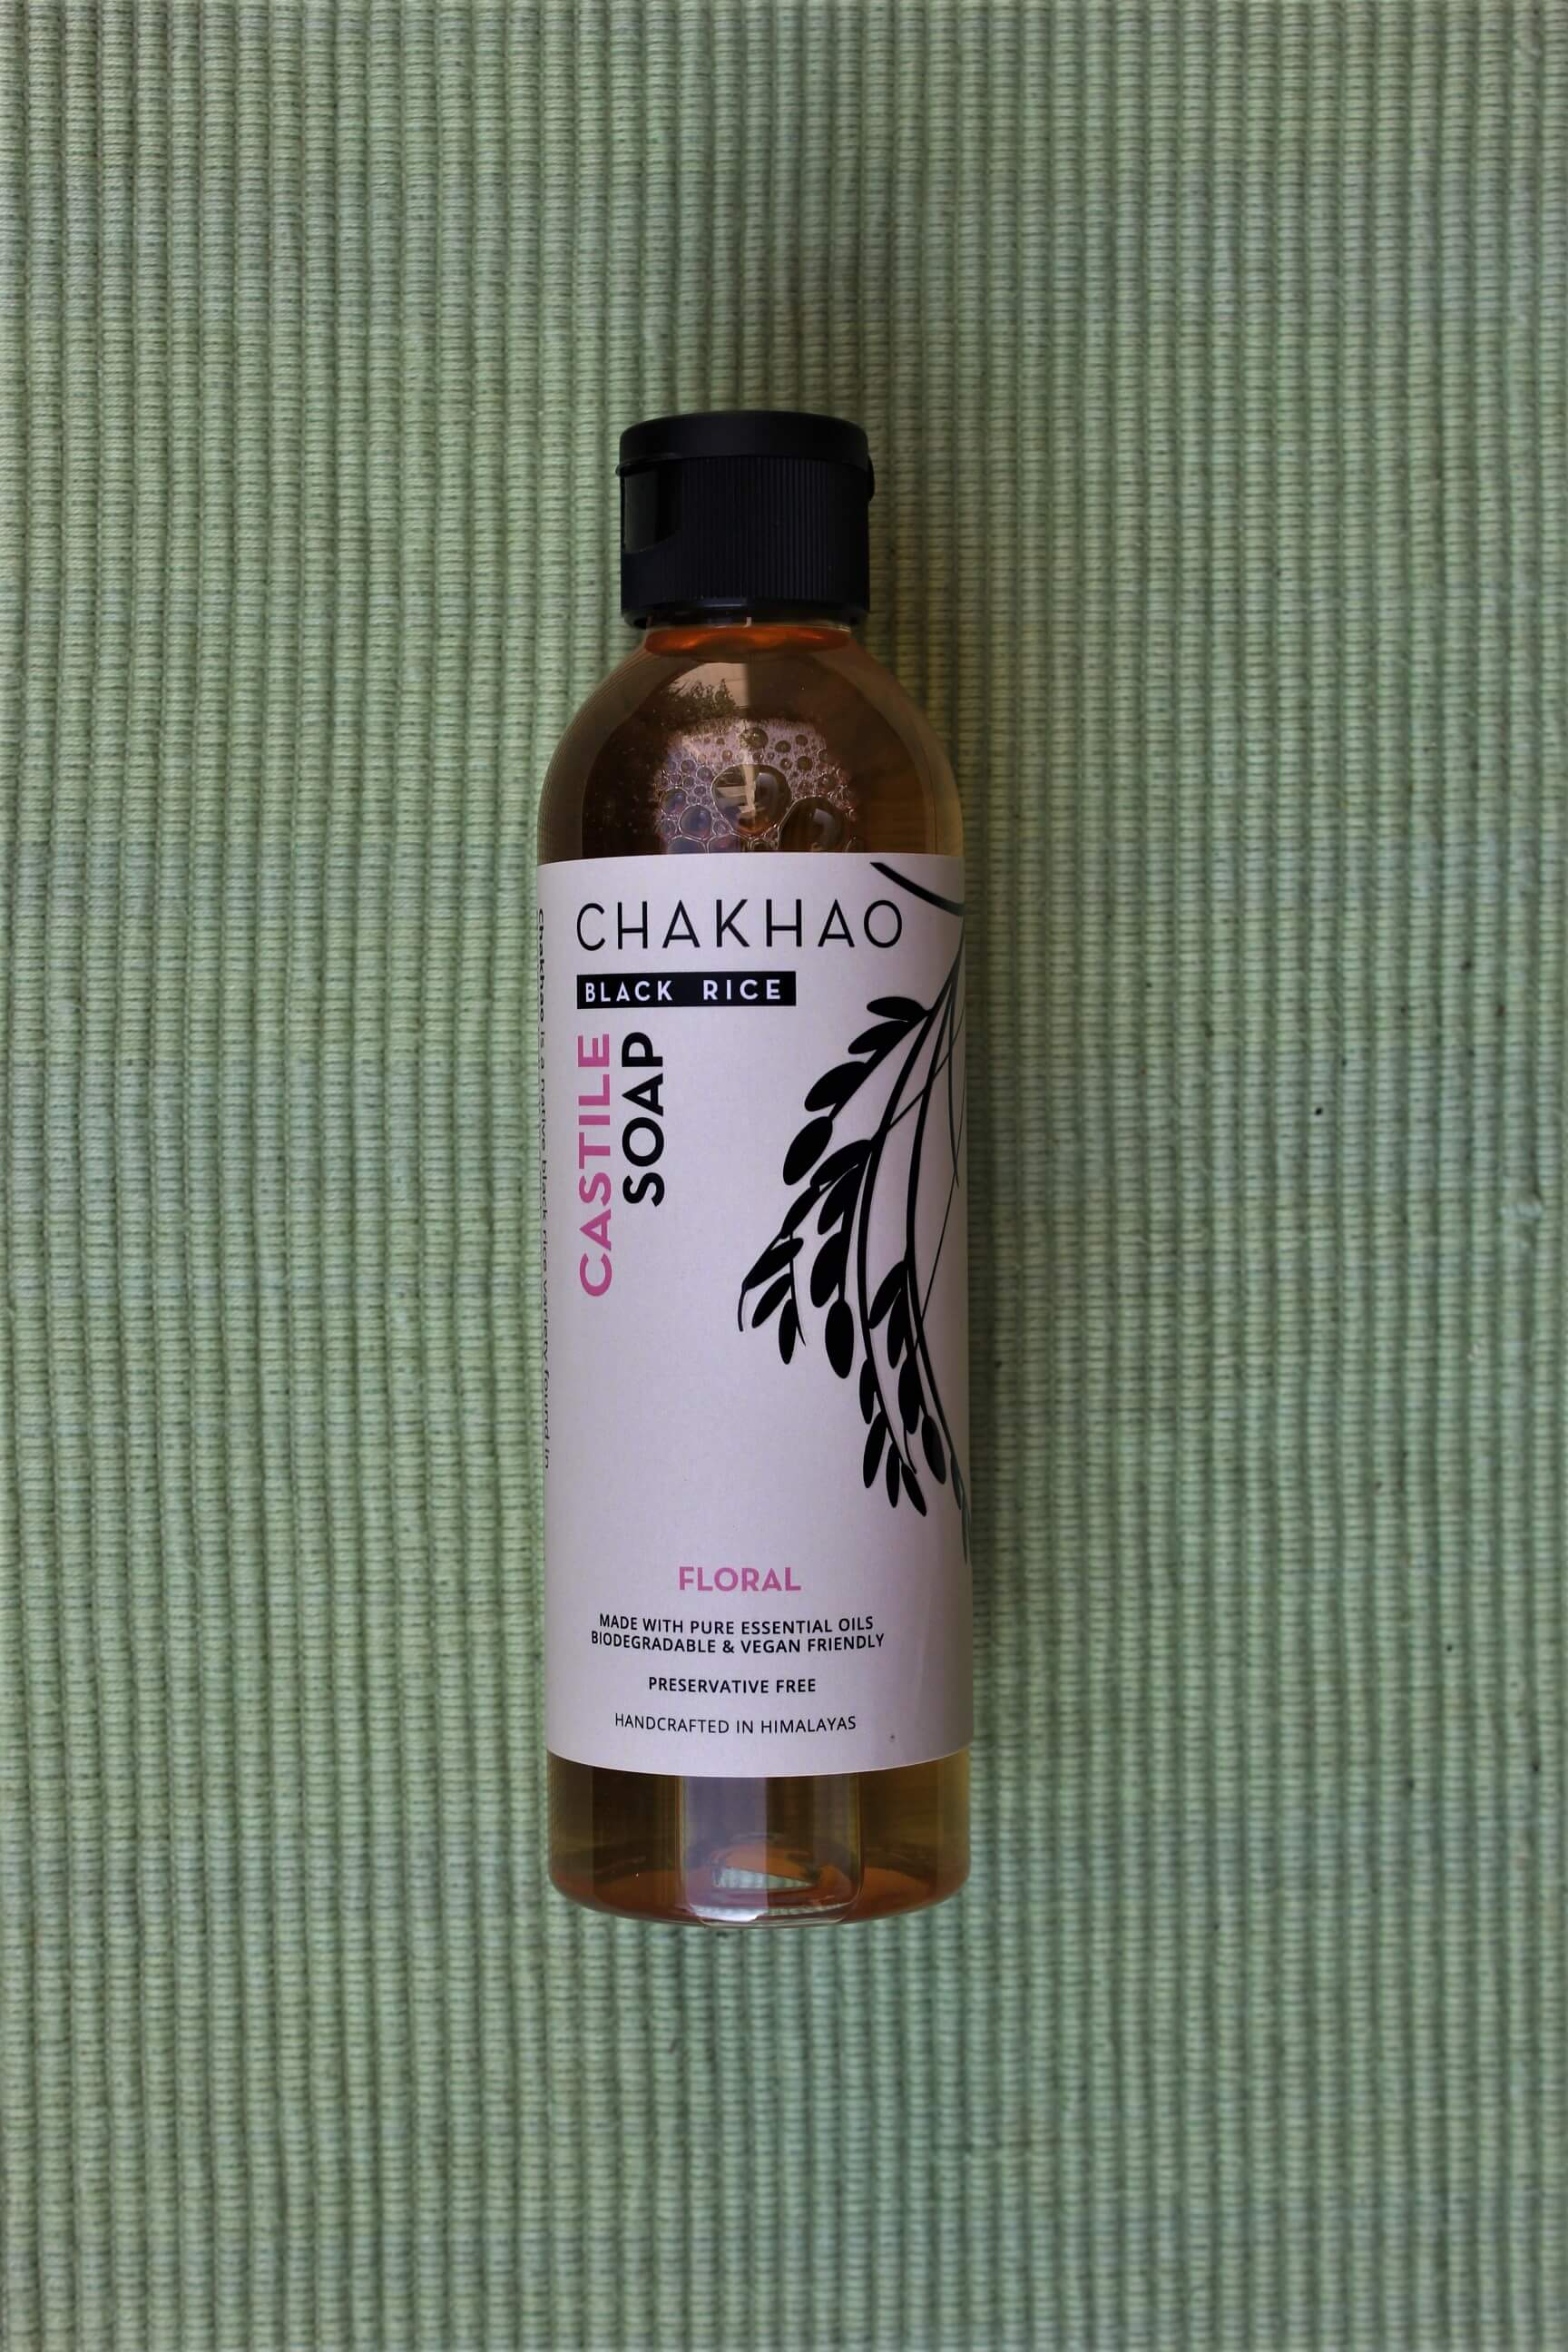 Chakhao-Black-Rice-Floral-Liquid-Castile-Soap-bottle